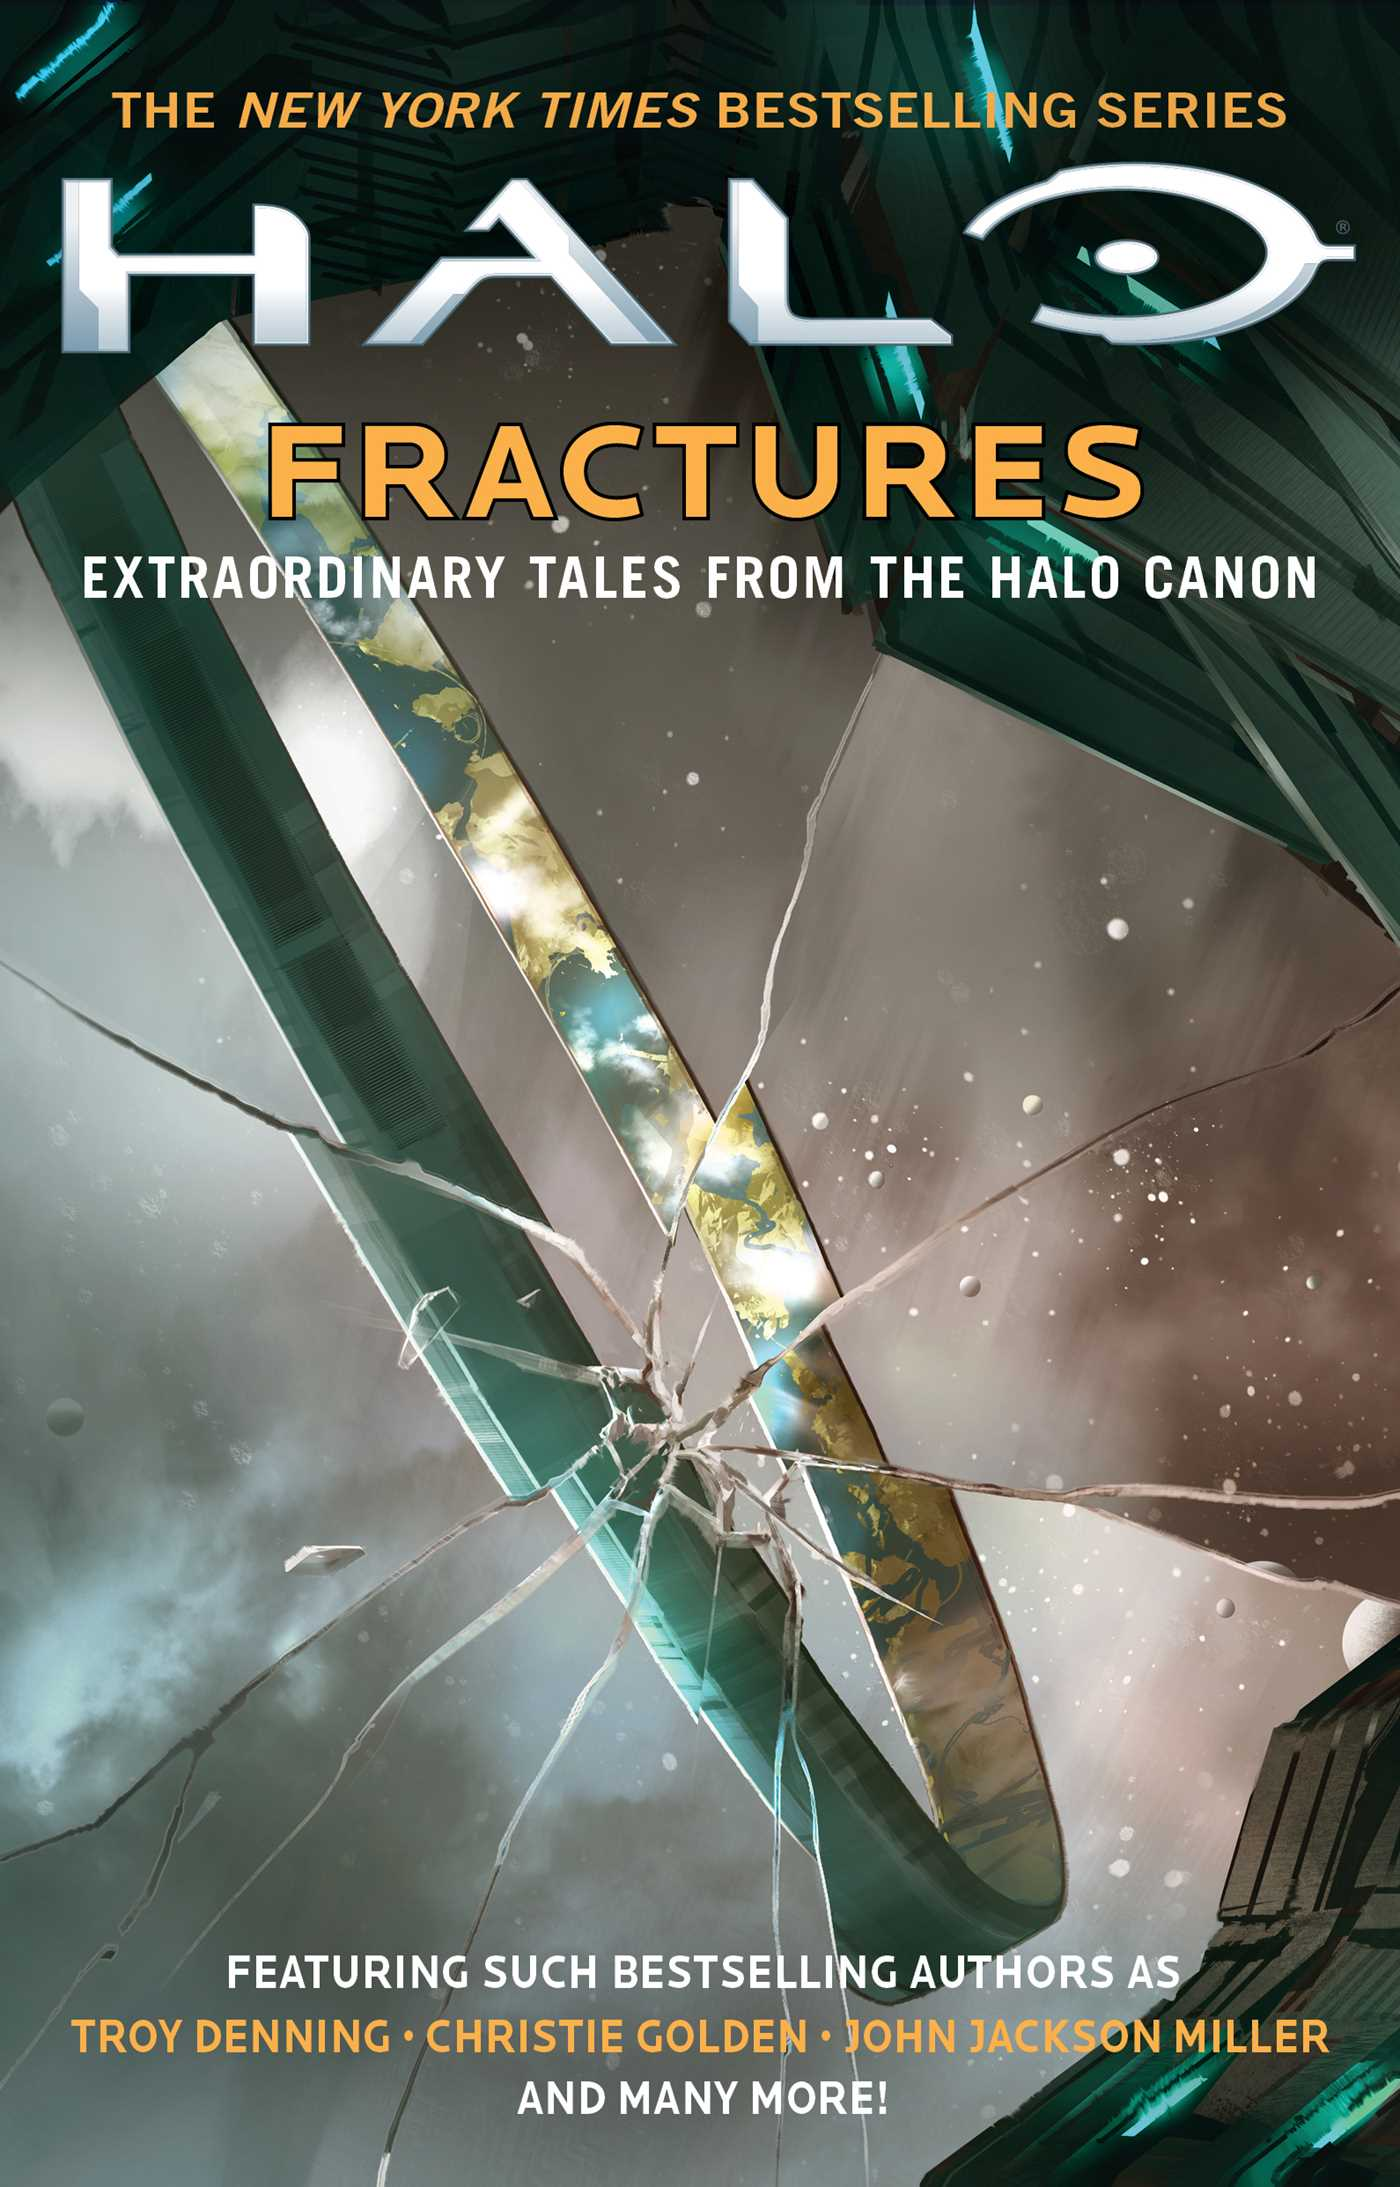 Book Cover Image (jpg): Halo: Fractures Ebook 9781501140686